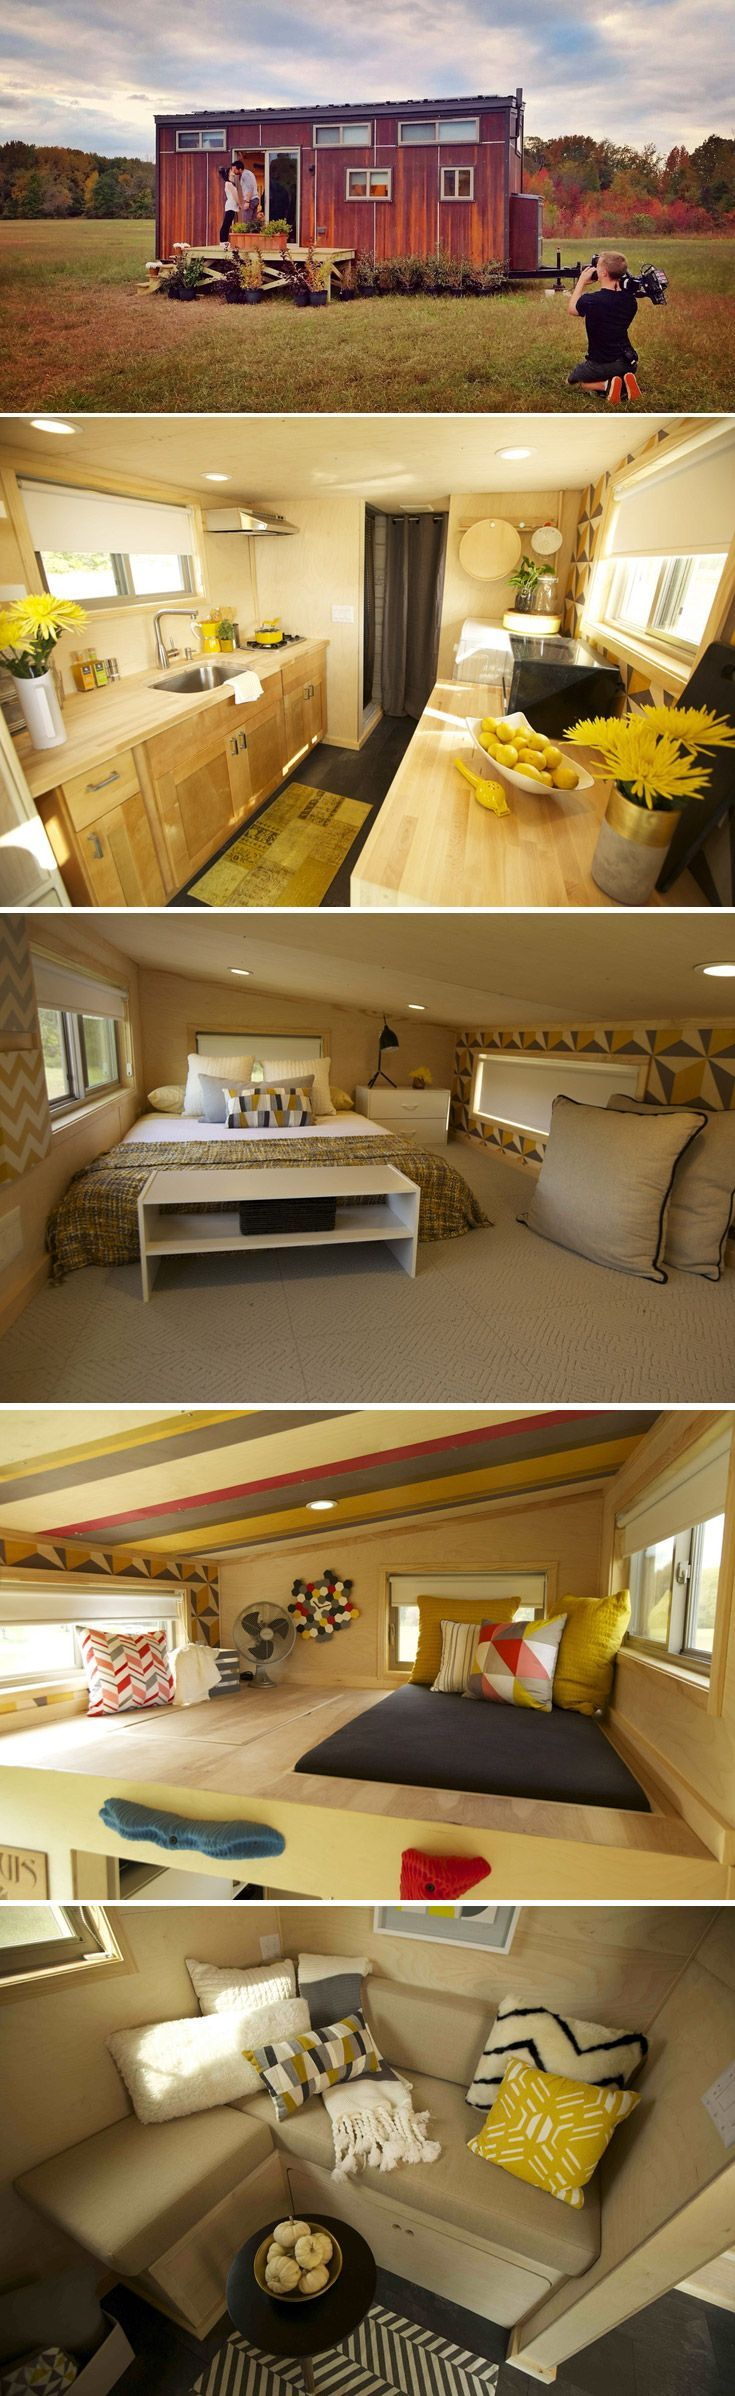 awesome The Z-Huis by Wishbone Tiny Homes is a 204 sq.ft. tiny house on wheels with two ... by http://www.danazhome-decor.xyz/tiny-homes/the-z-huis-by-wishbone-tiny-homes-is-a-204-sq-ft-tiny-house-on-wheels-with-two/